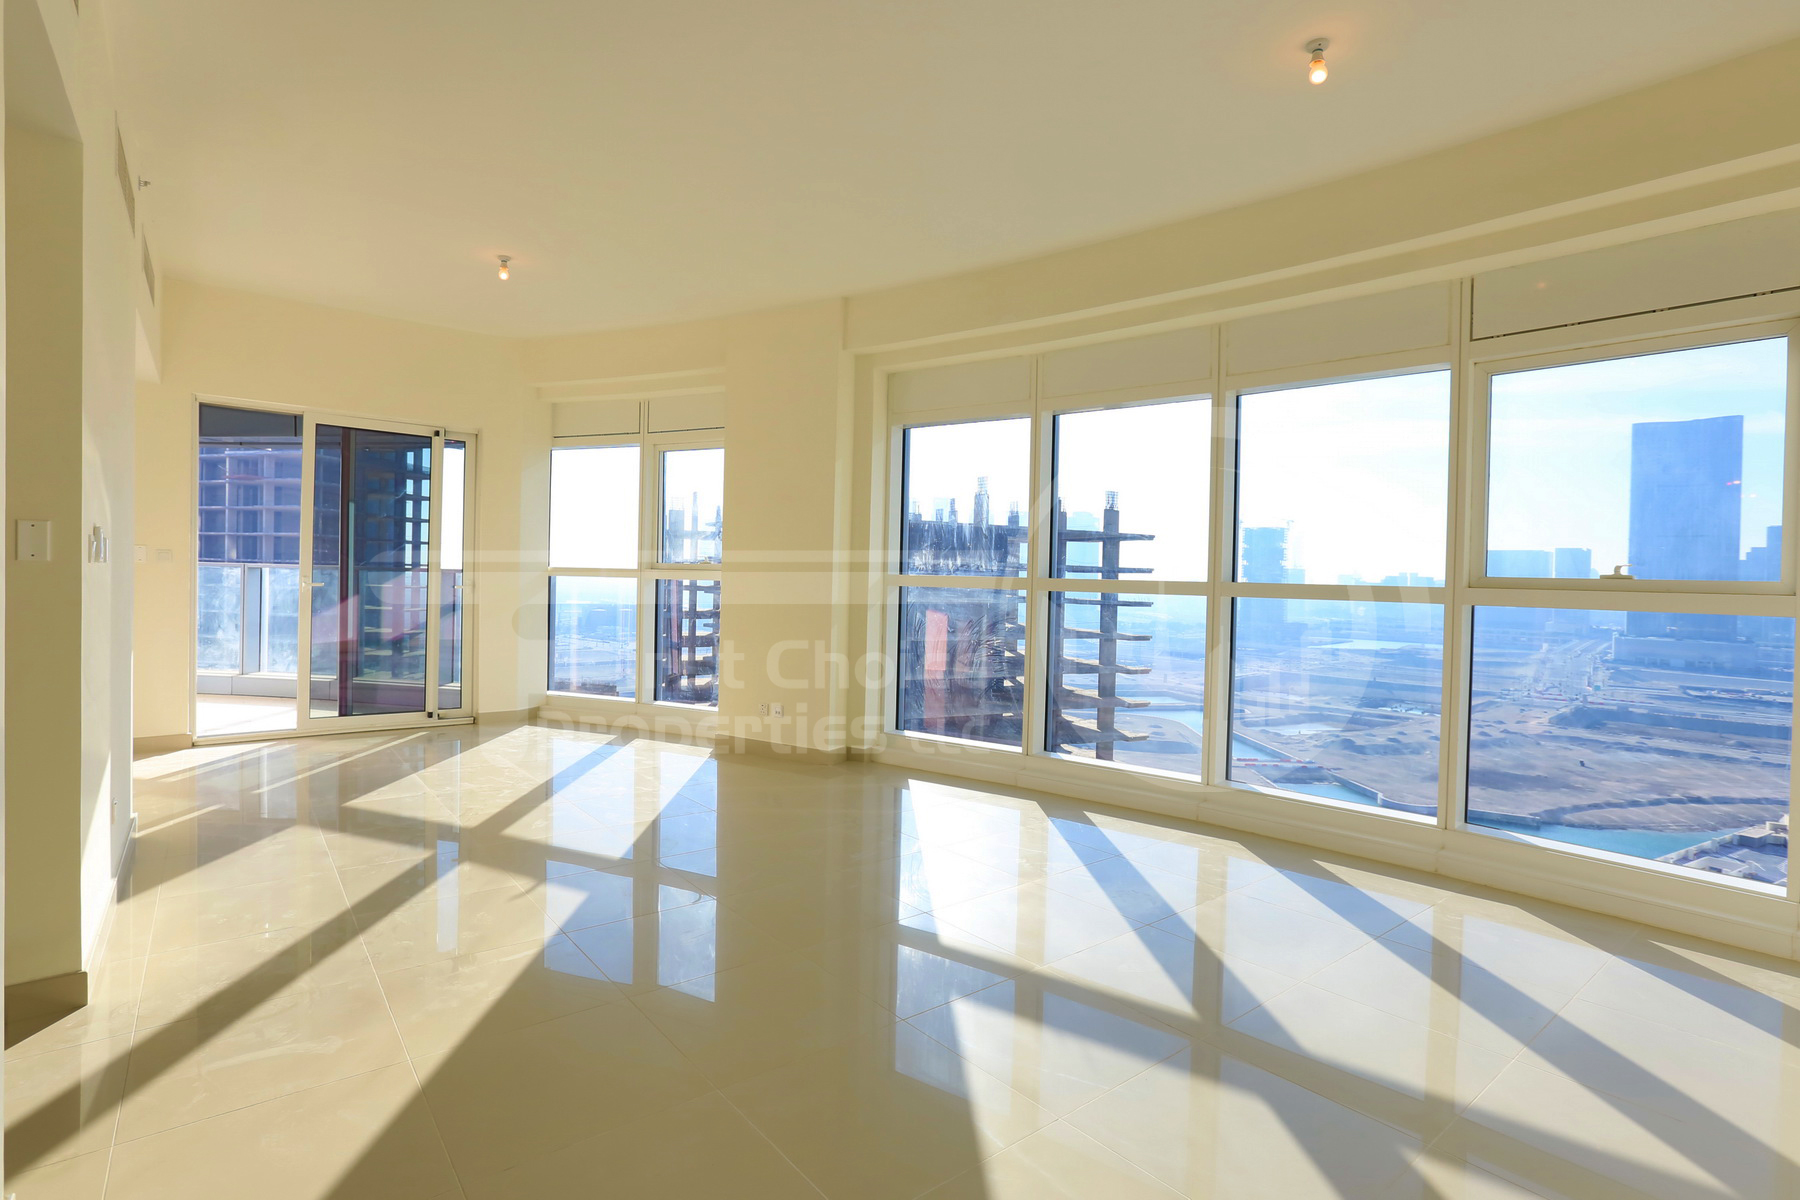 3BR Apartment - Abu Dhabi - UAE - Al Reem Island - City of Lights - C10 Building (13).JPG